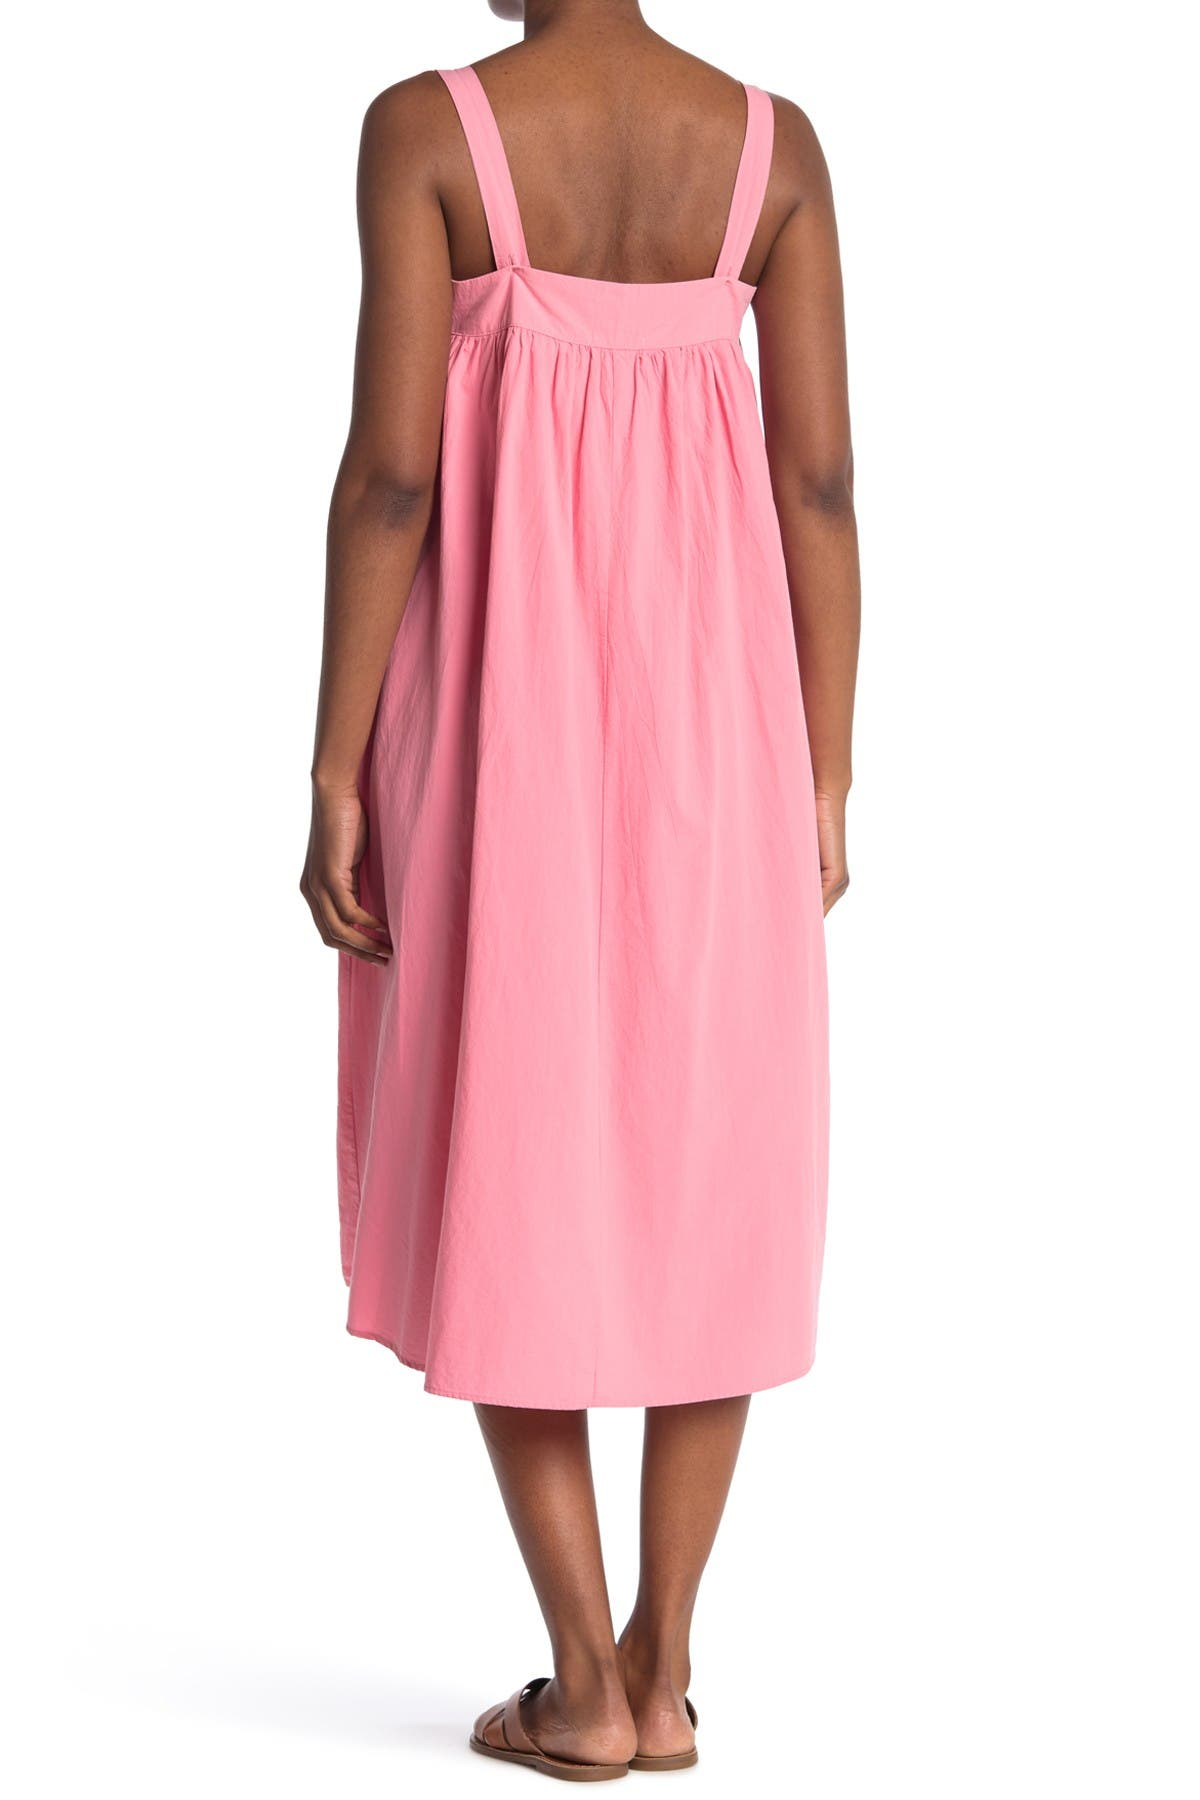 Cottagecore Clothing, Soft Aesthetic STITCHDROP Adjustable Strap Tie Front Woven Dress Size XL - Cottage Pink at Nordstrom Rack $32.97 AT vintagedancer.com